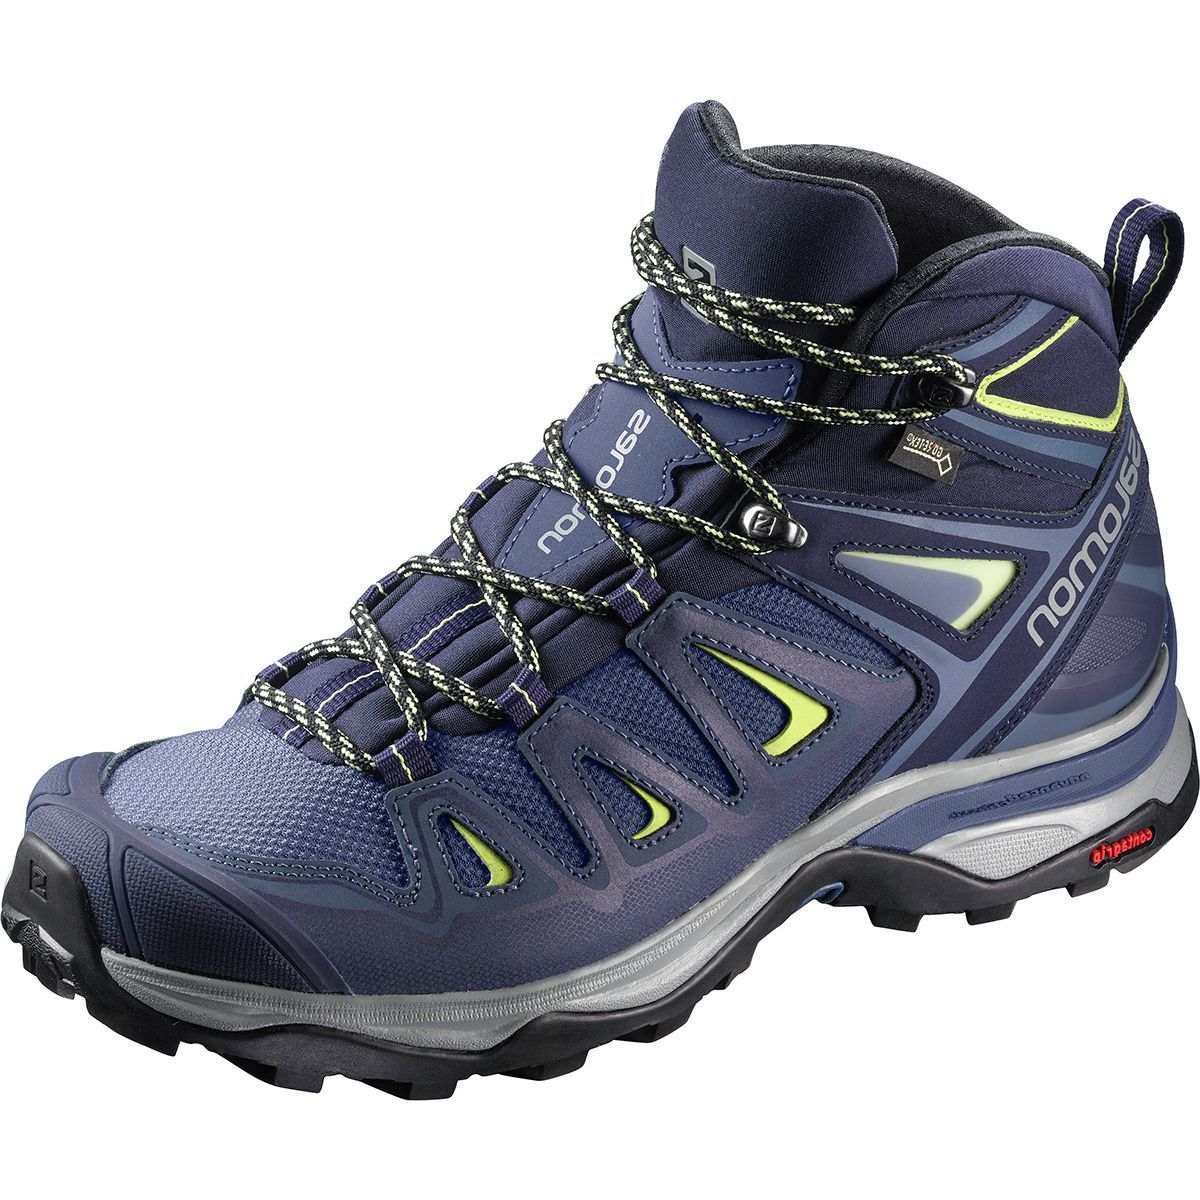 Salomon X Ultra 3 Mid GTX Wide Hiking Boot - Women's